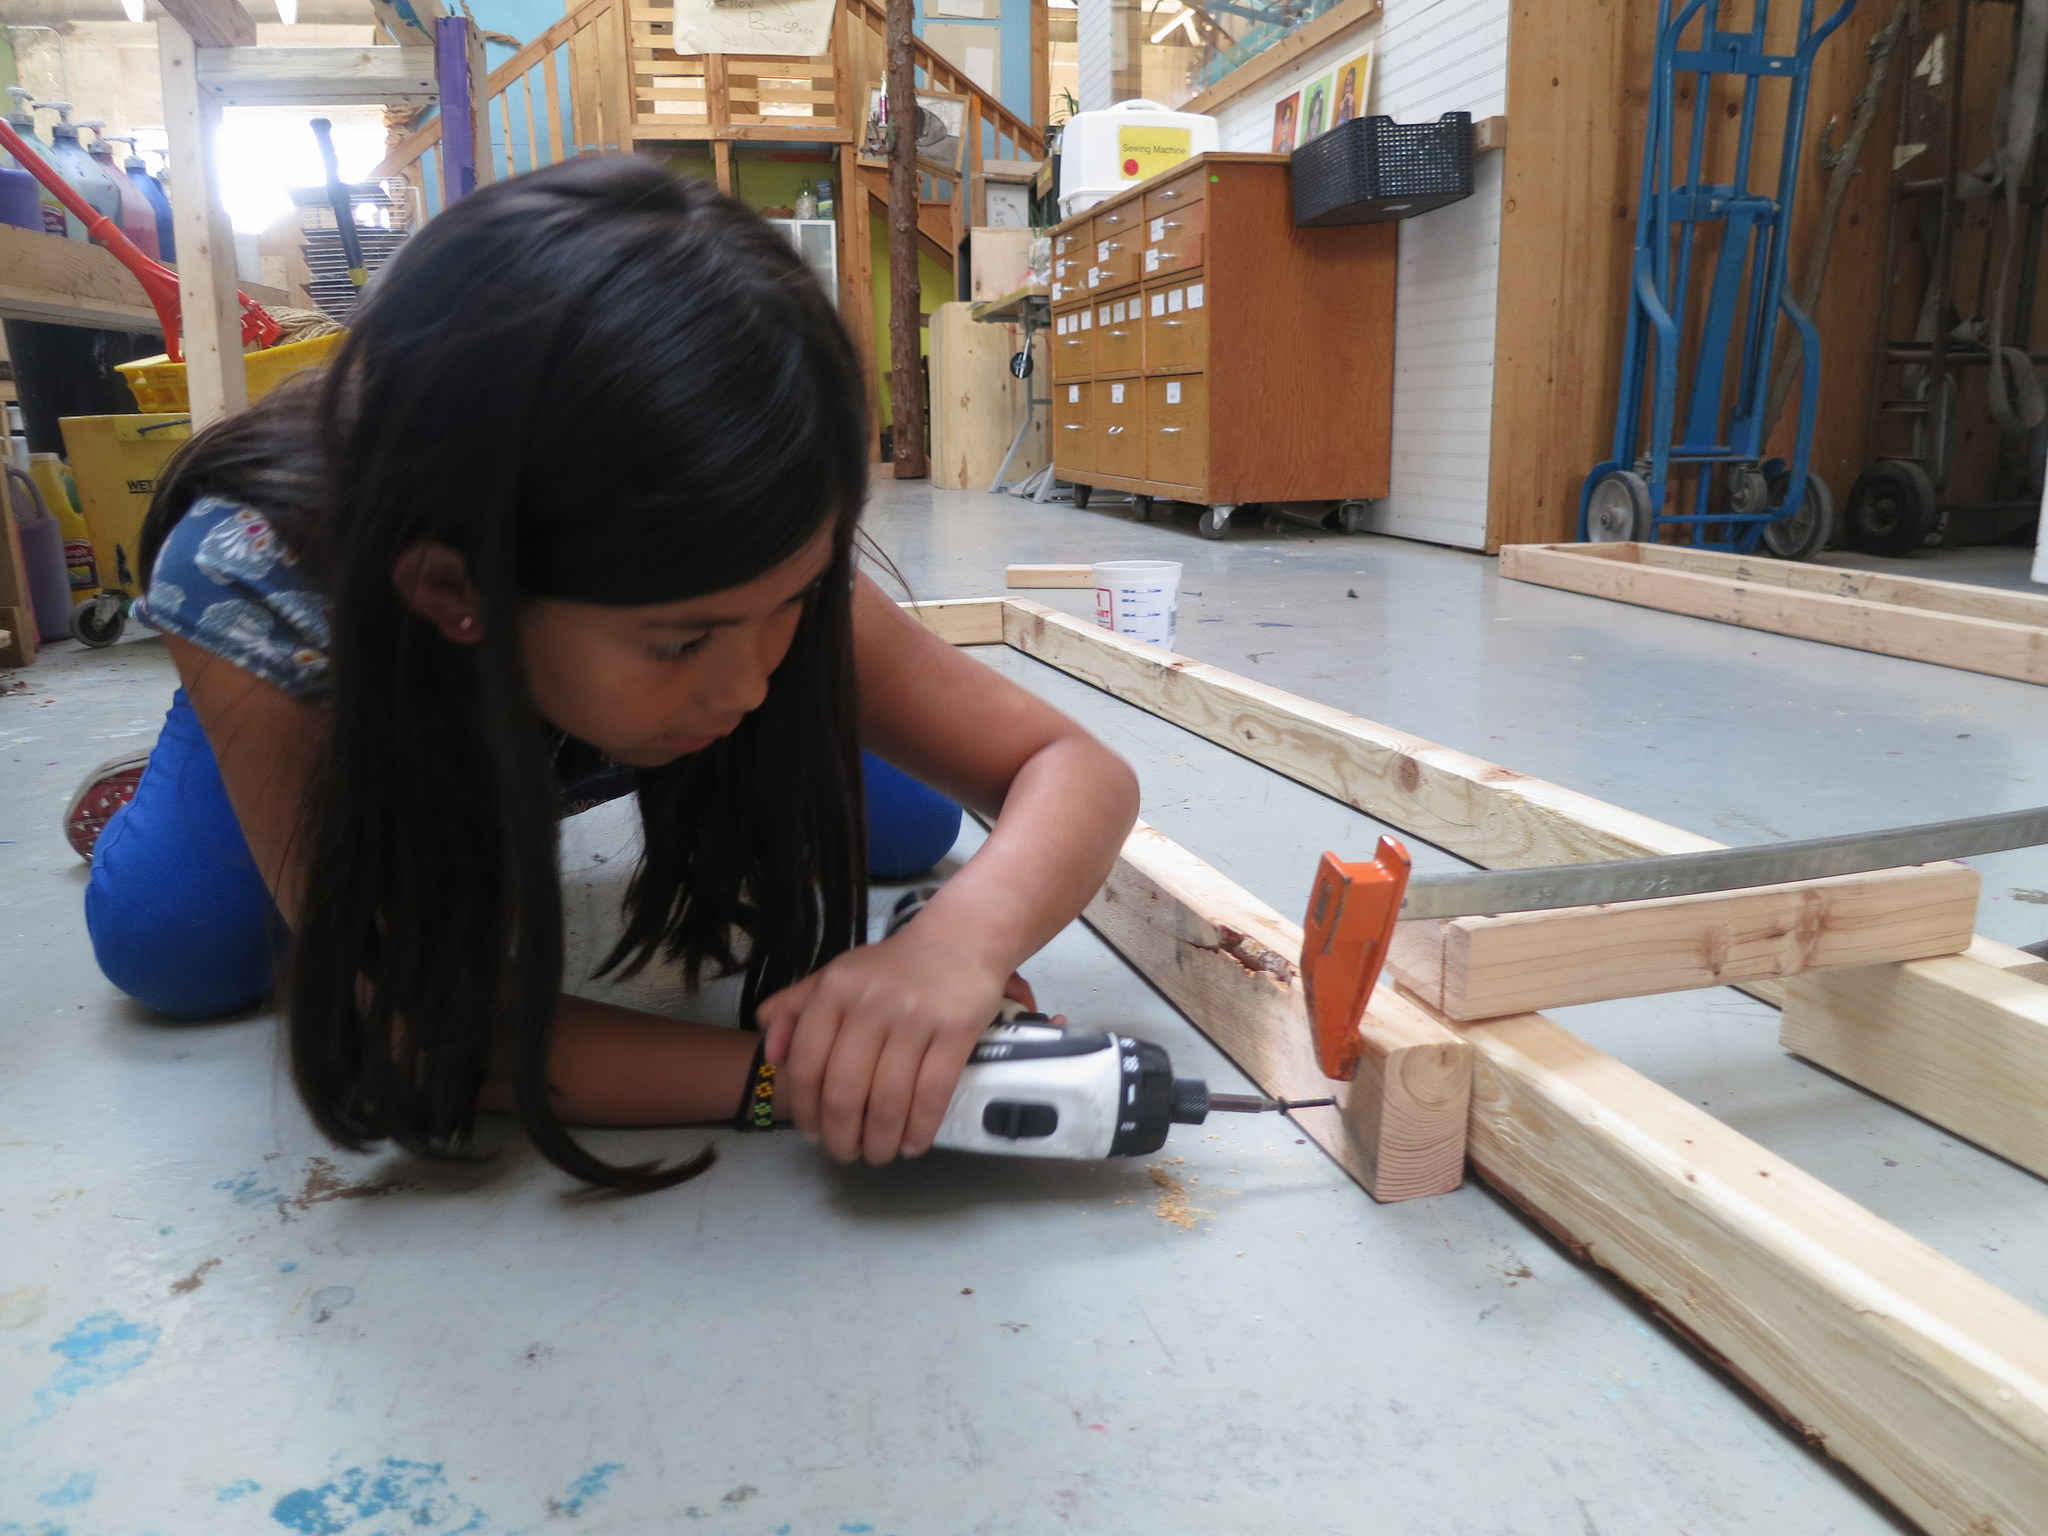 Maite grabs a drill and gets to work helping attach all the vertical ramp legs using the system established last weekof driving only a single screw so they can be rotated upwards before being secured into place.